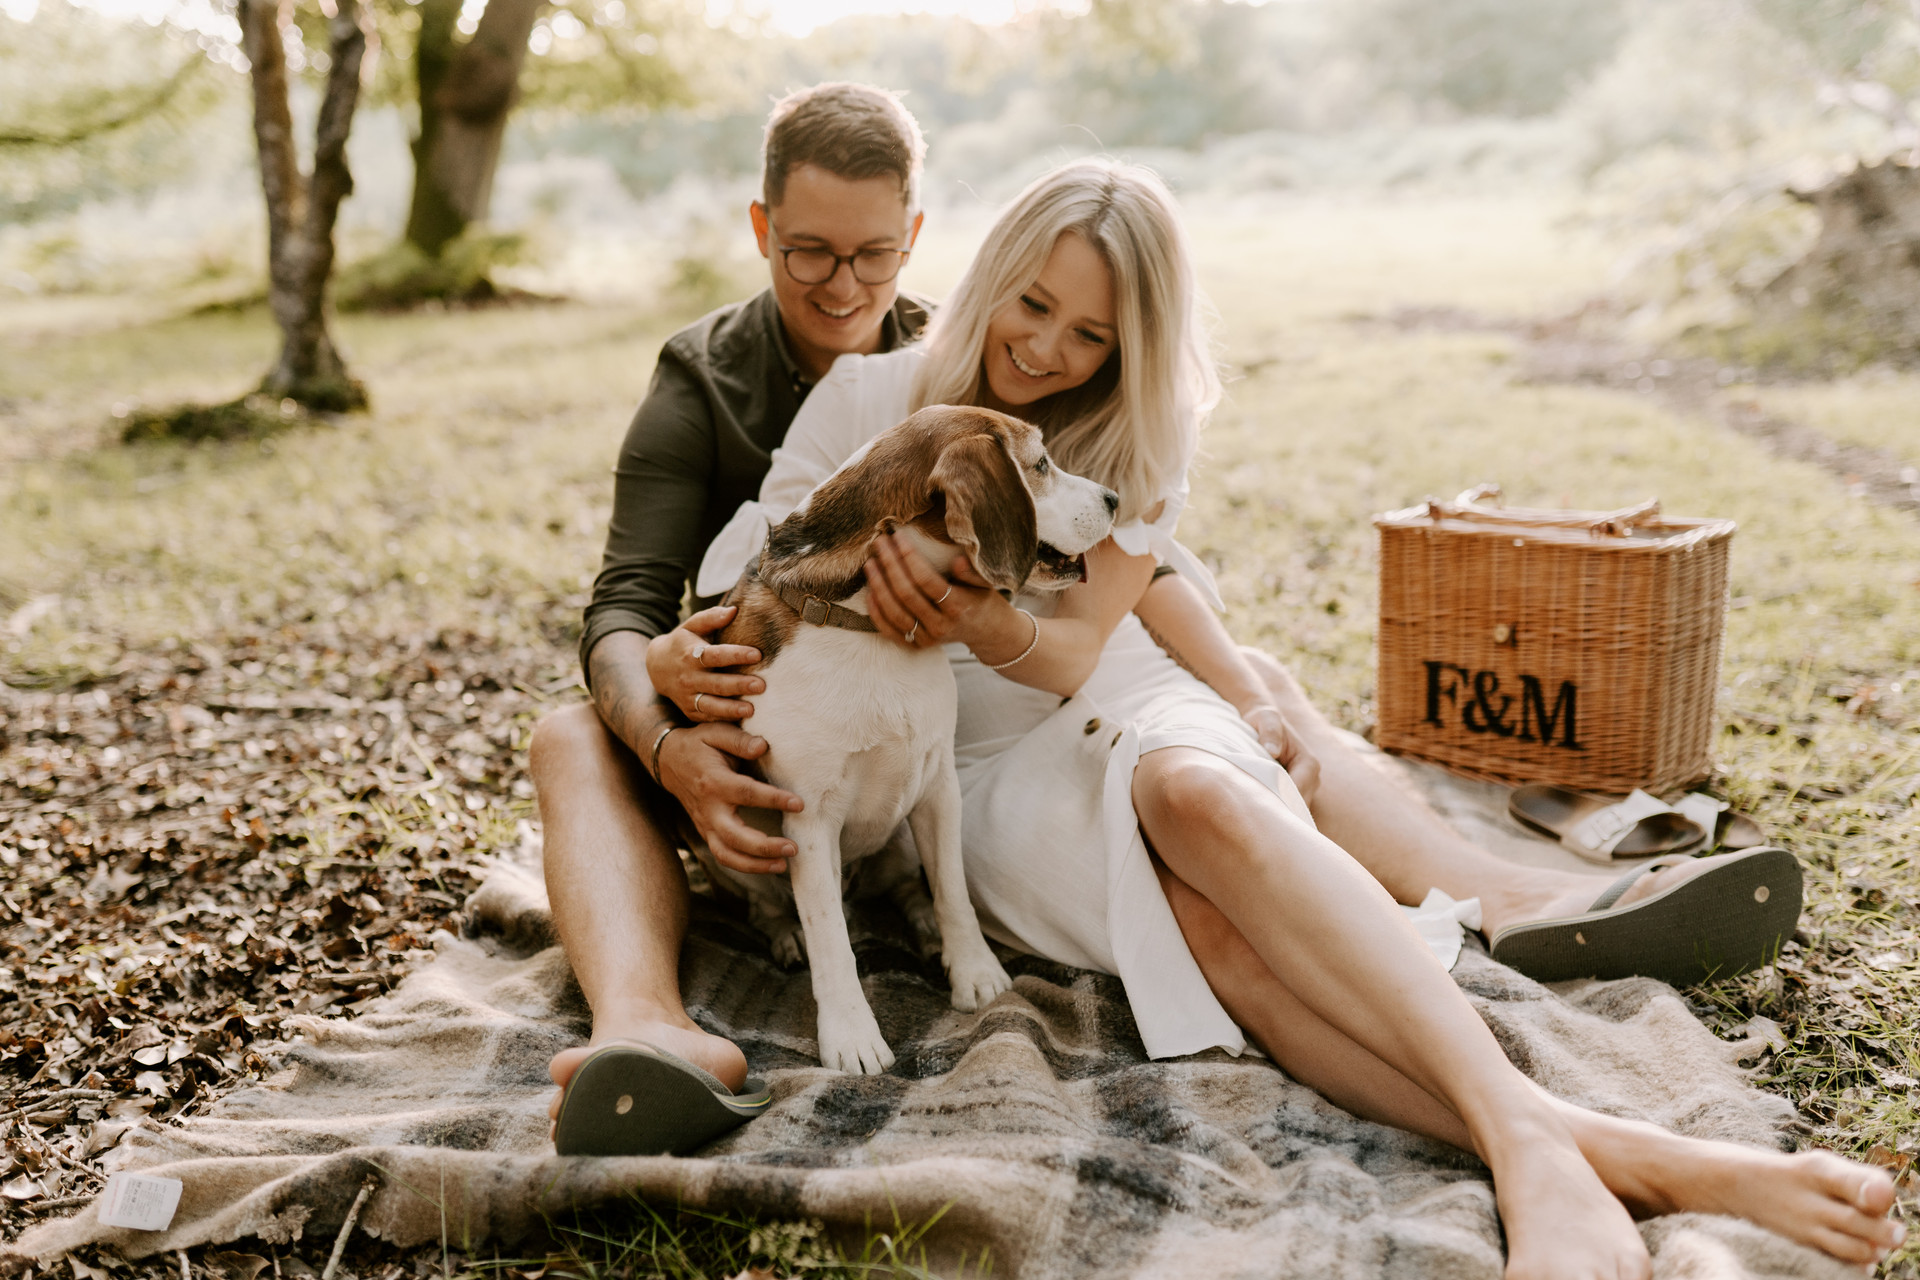 Sian & Mike | Couple Session-076.jpg